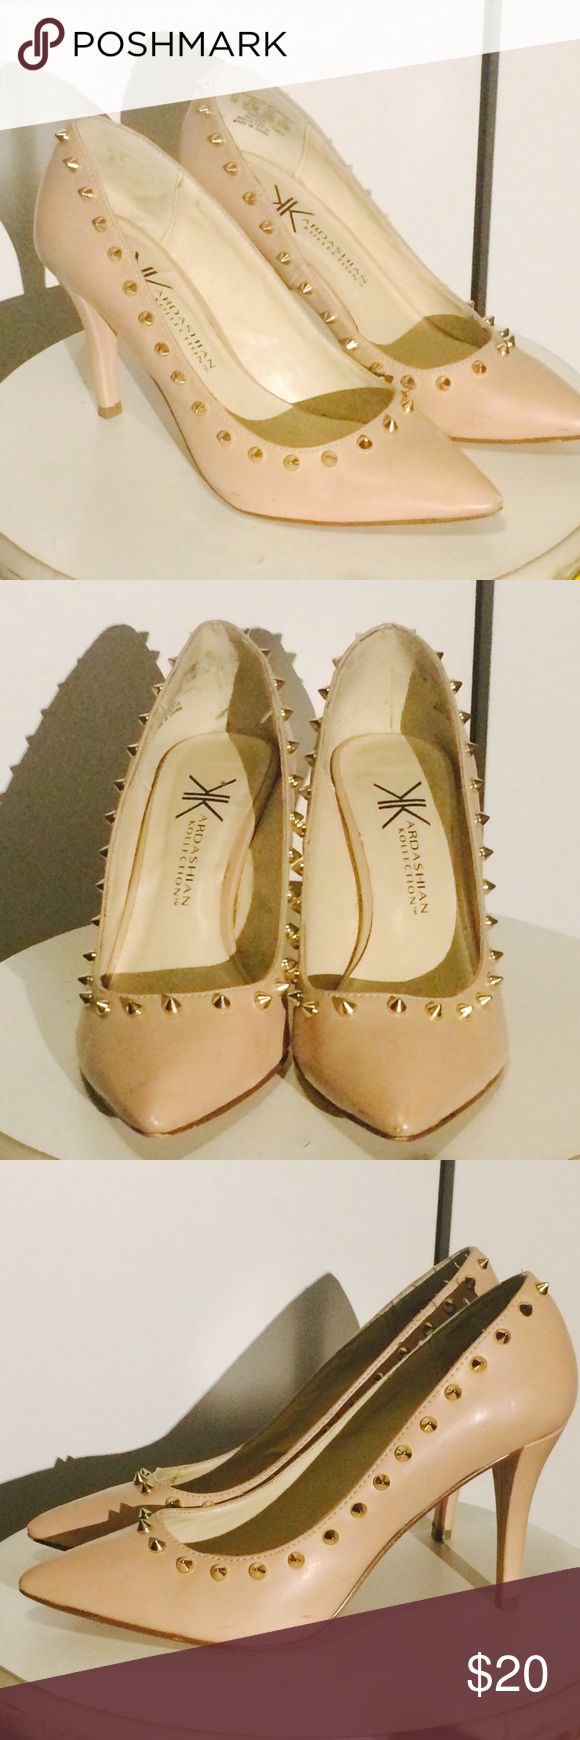 Kardashian Kollection Gold Studded Heels Size 7. Purchased used, never used them myself though. Thought someone else might get some use out of these babies! :) Light scratches, nothing terrible for my liking. :) (see pictures above) Kardashian Kollection Shoes Heels